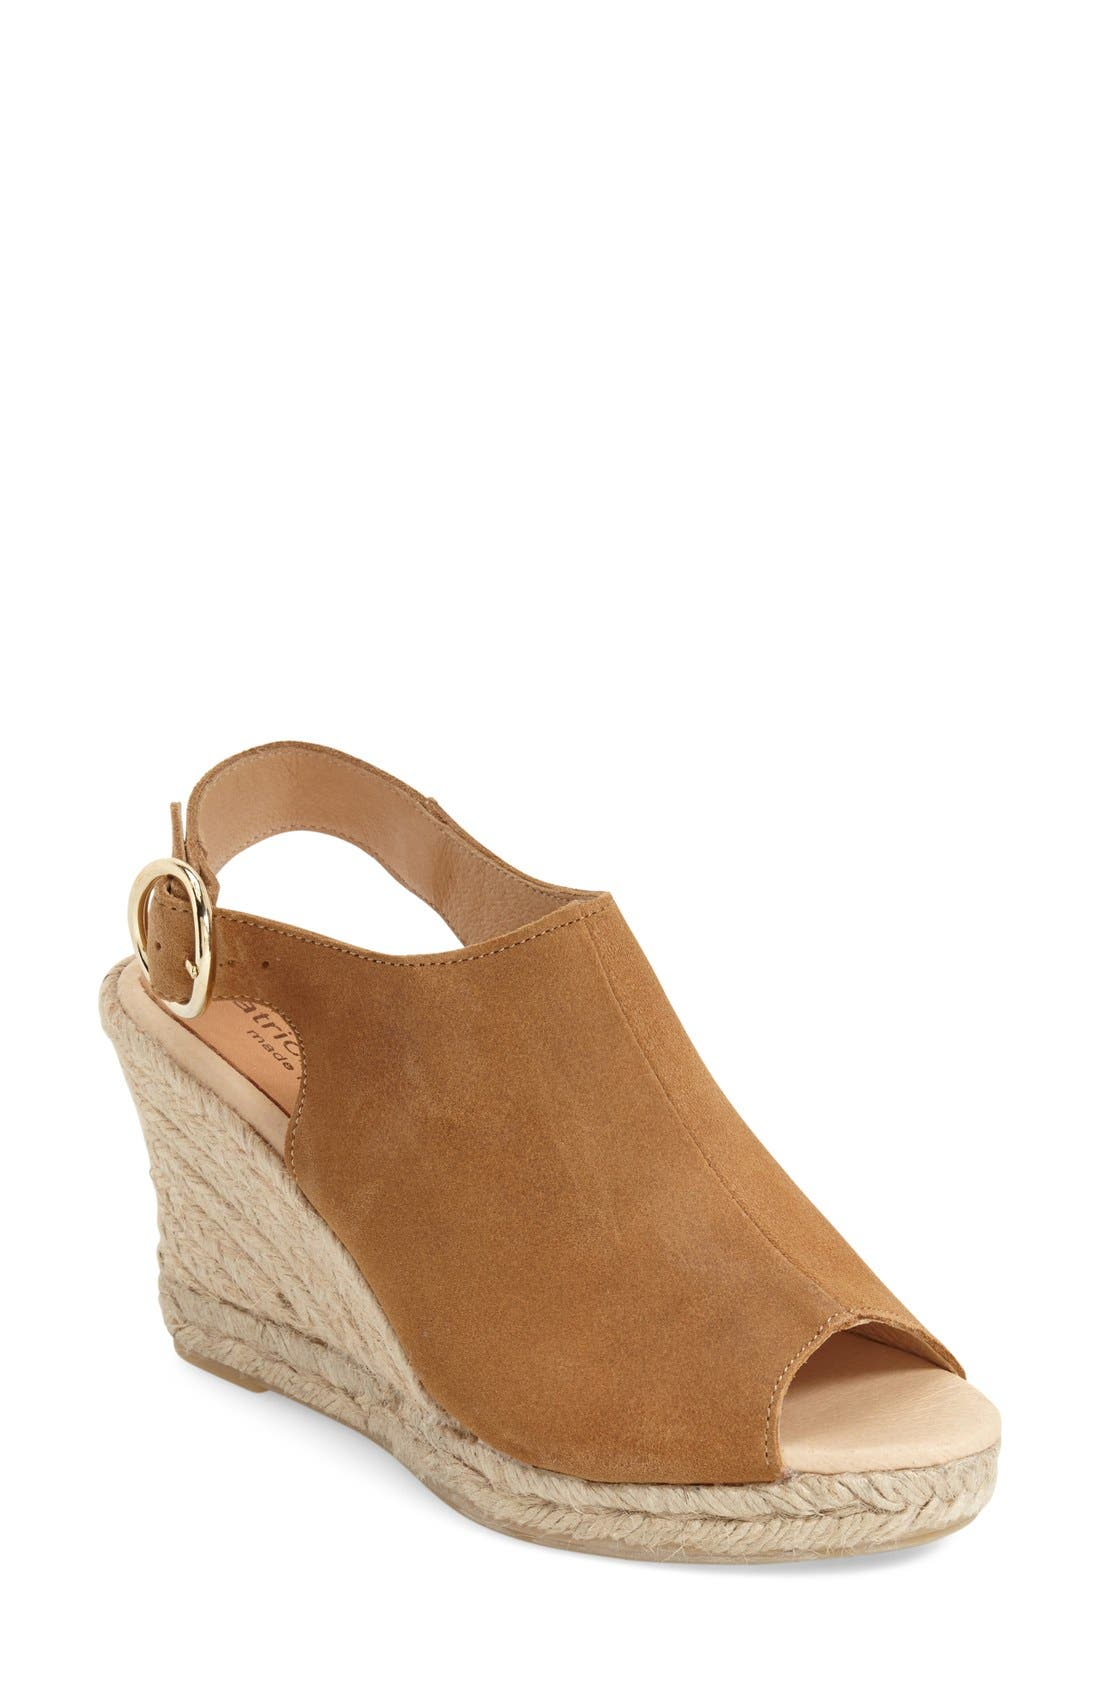 PATRICIA GREEN 'Belle' Espadrille Wedge Sandal